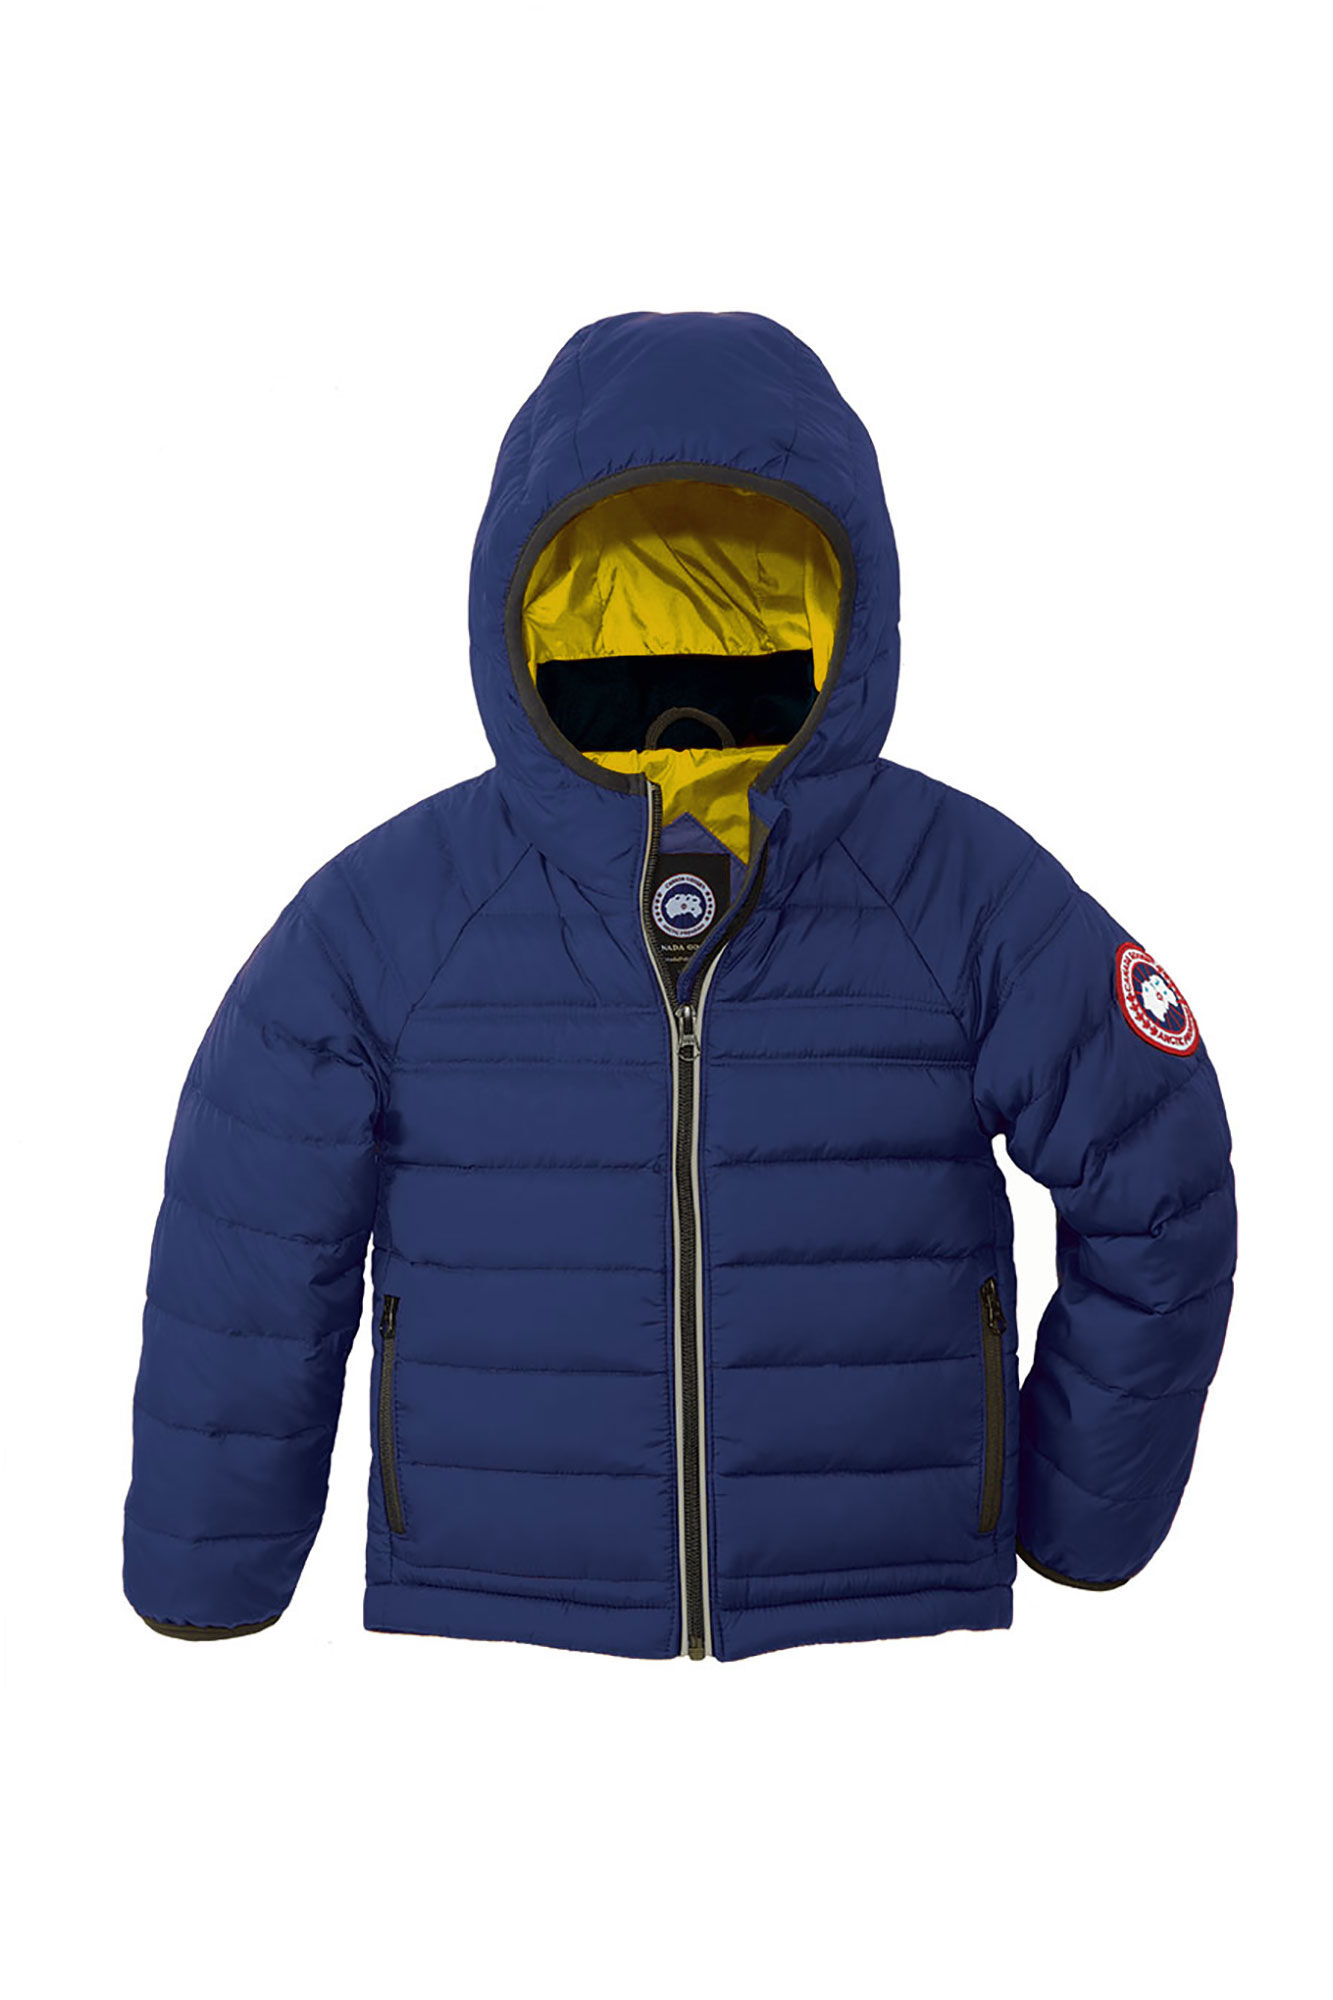 Canada Goose' Green 'Grizzly Bomber' Down Padded Jacket 2-3 year